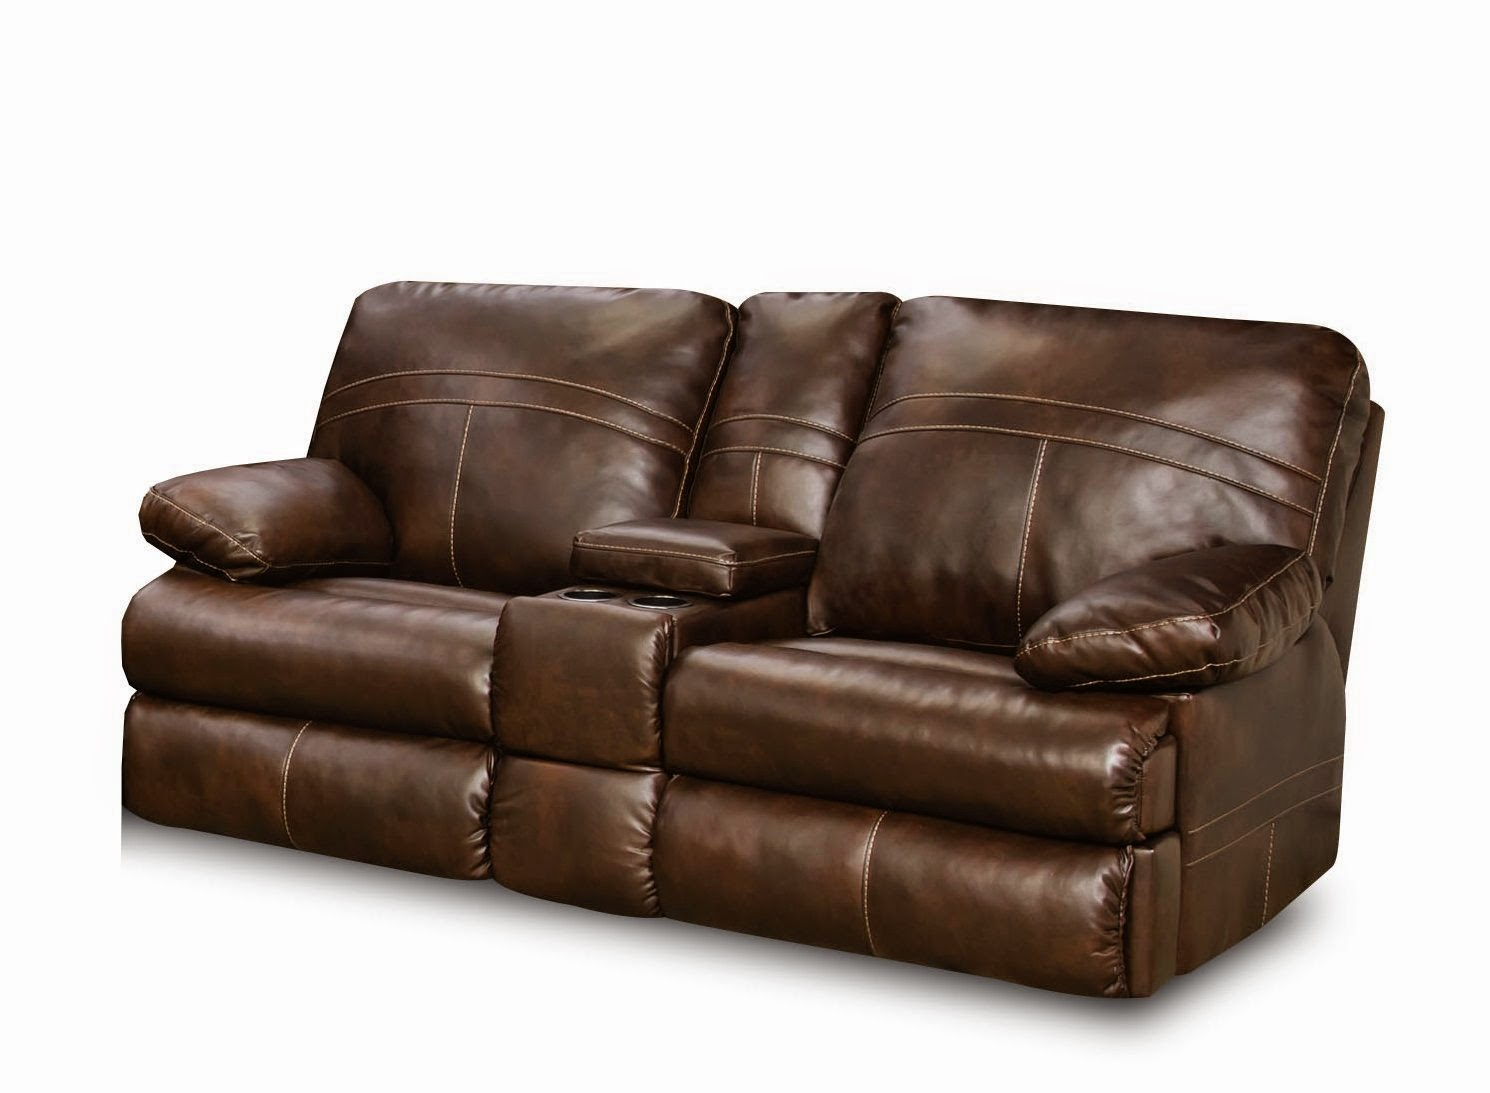 The best reclining leather sofa reviews simmons leather reclining sofa and loveseat Leather loveseat recliners